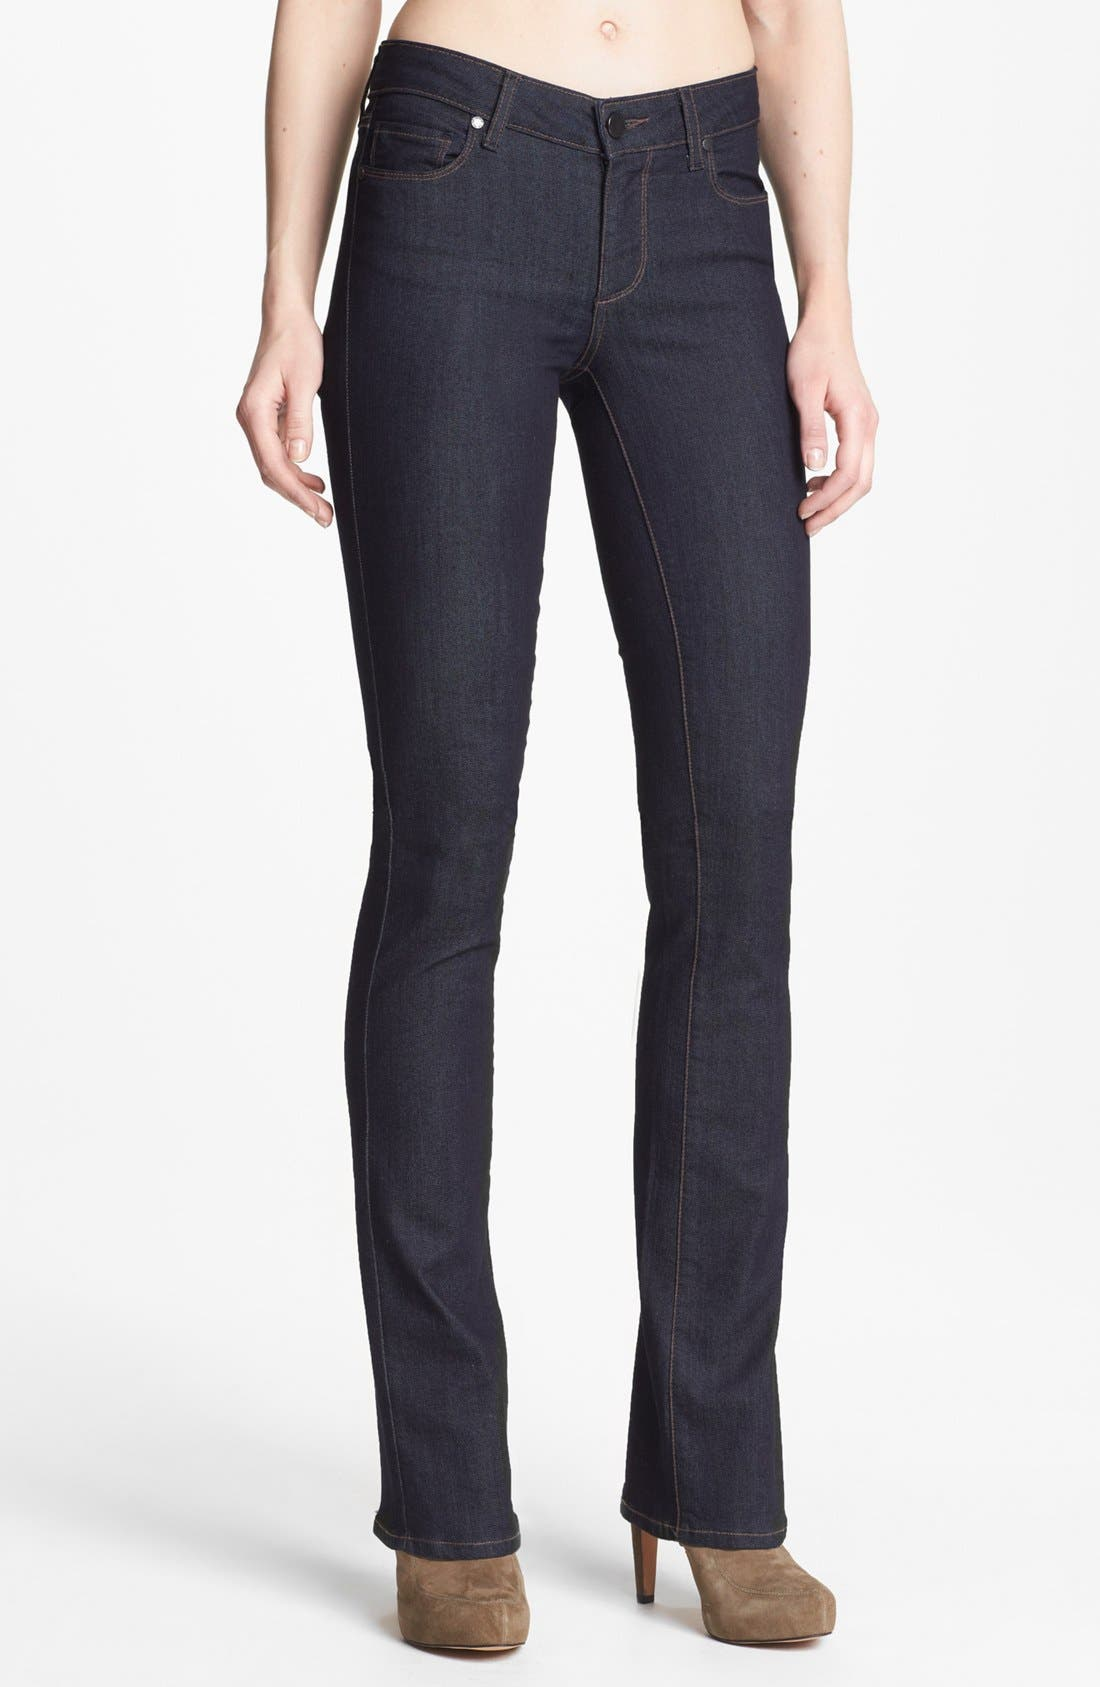 Alternate Image 1 Selected - Paige Denim 'Manhattan' Baby Bootcut Jeans (Elyse)